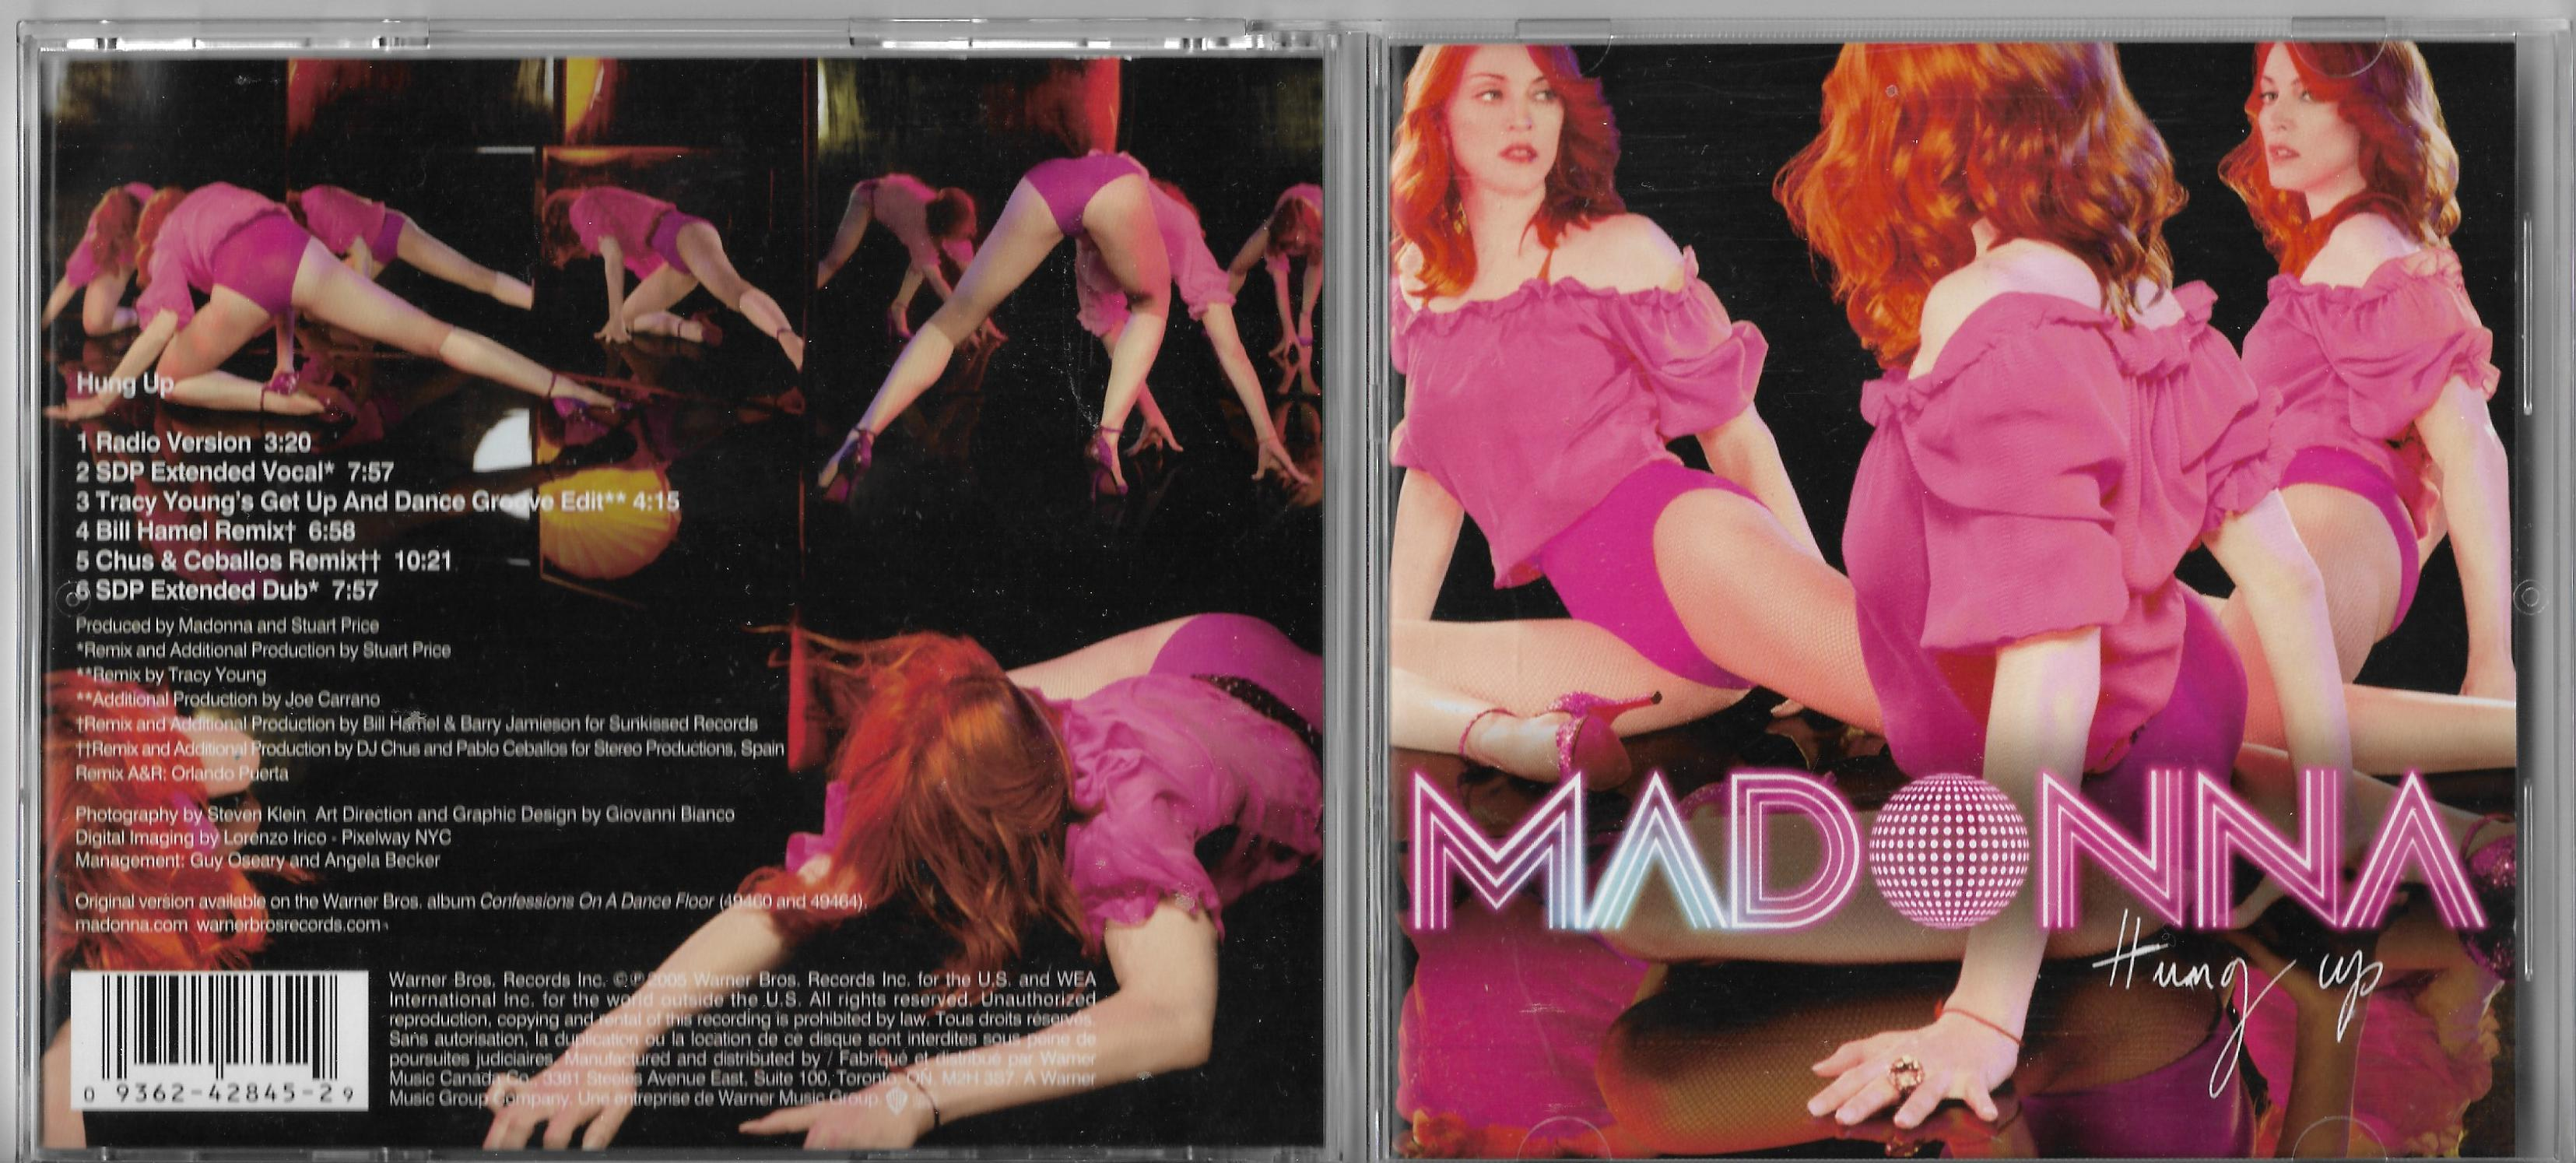 MADONNA - I HEL-FIGUR 95 PAGES HARD BACK BOOK - Livre